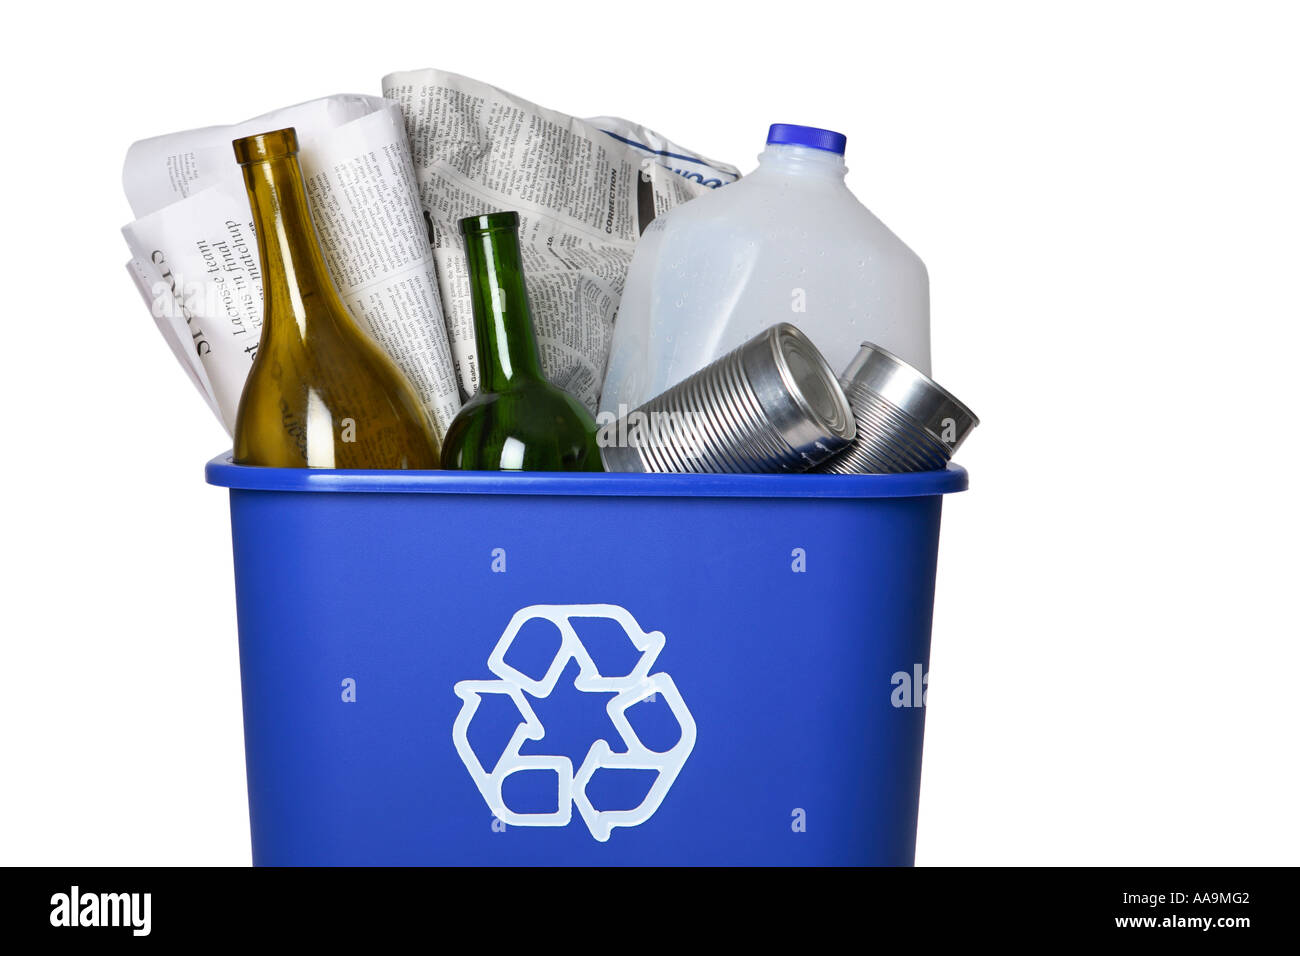 Recycle bin full of recyclable household items. - Stock Image